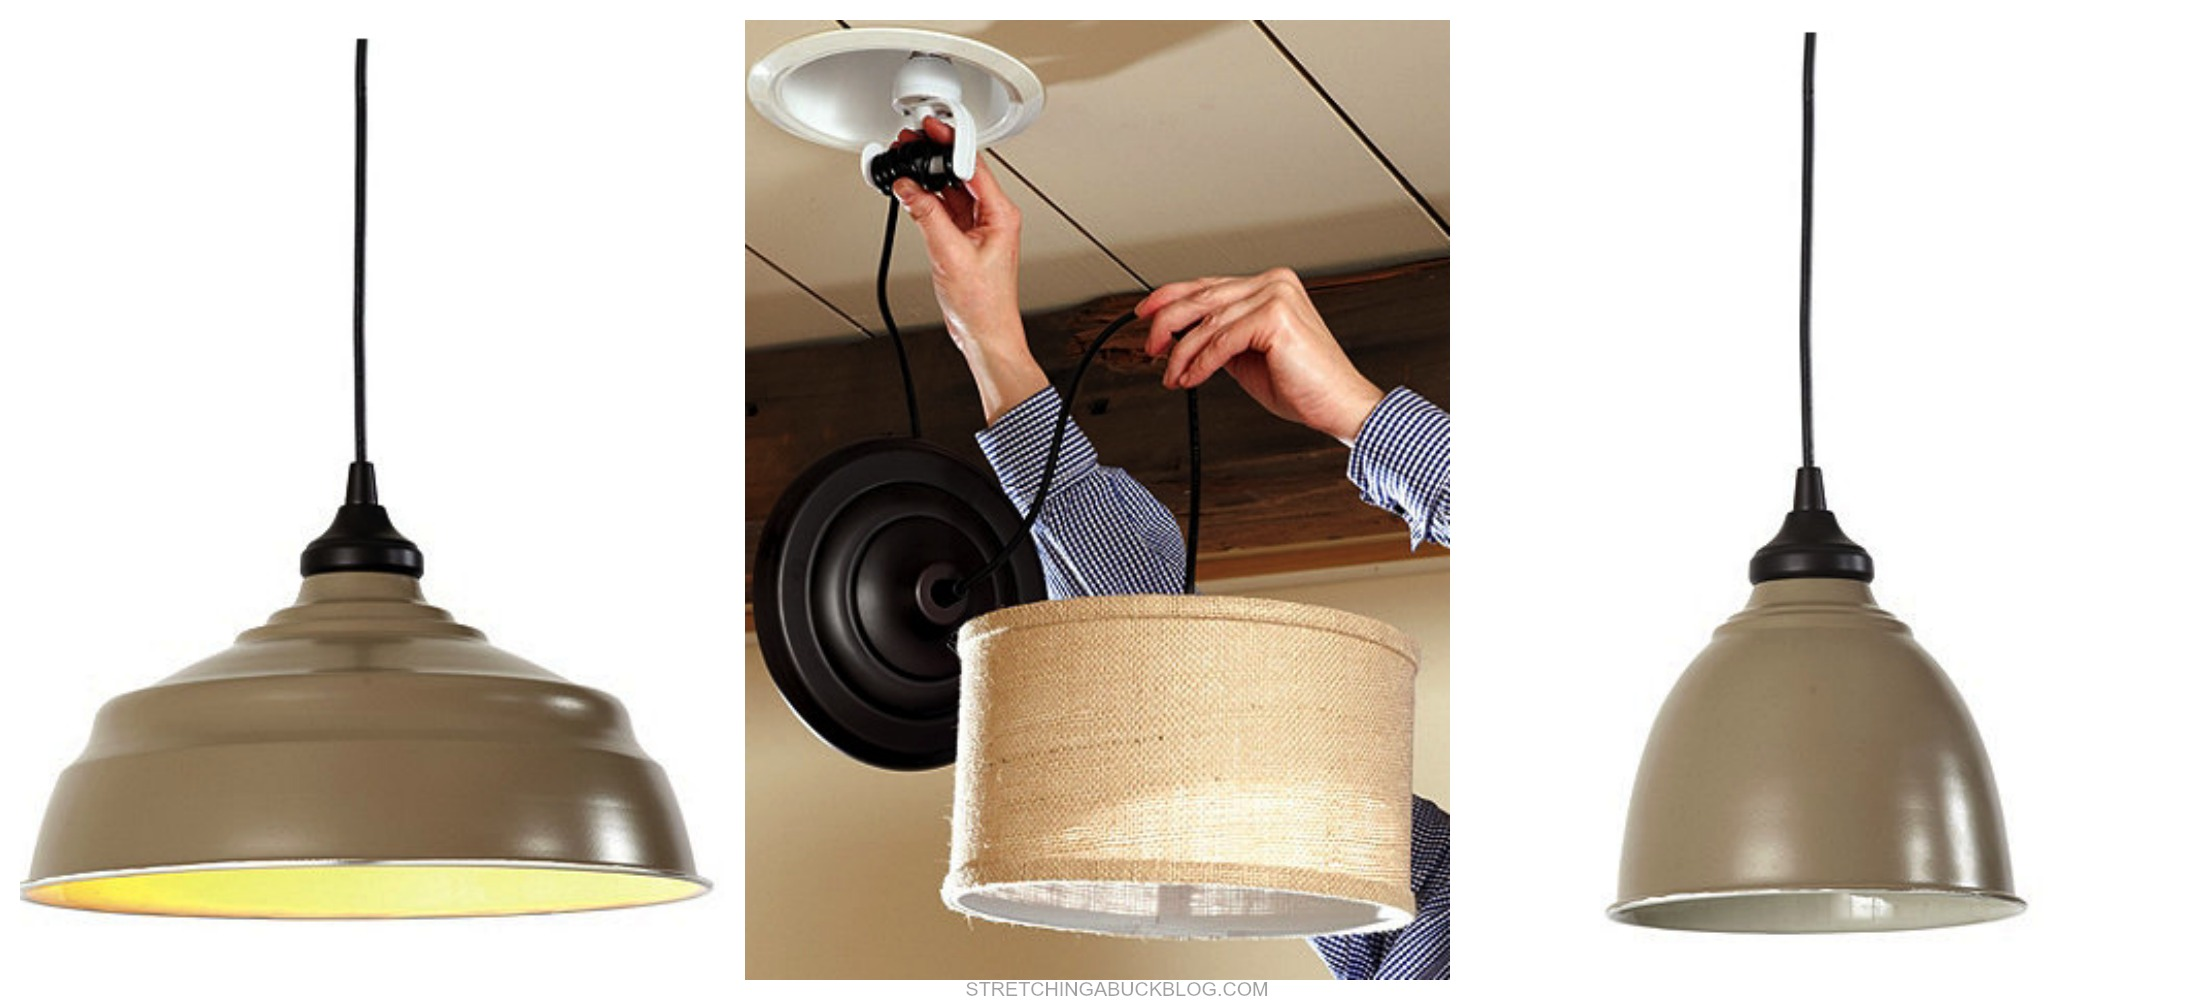 Spray paint your light fixtures and save big stretching a buck ballard design outlet lights arubaitofo Image collections